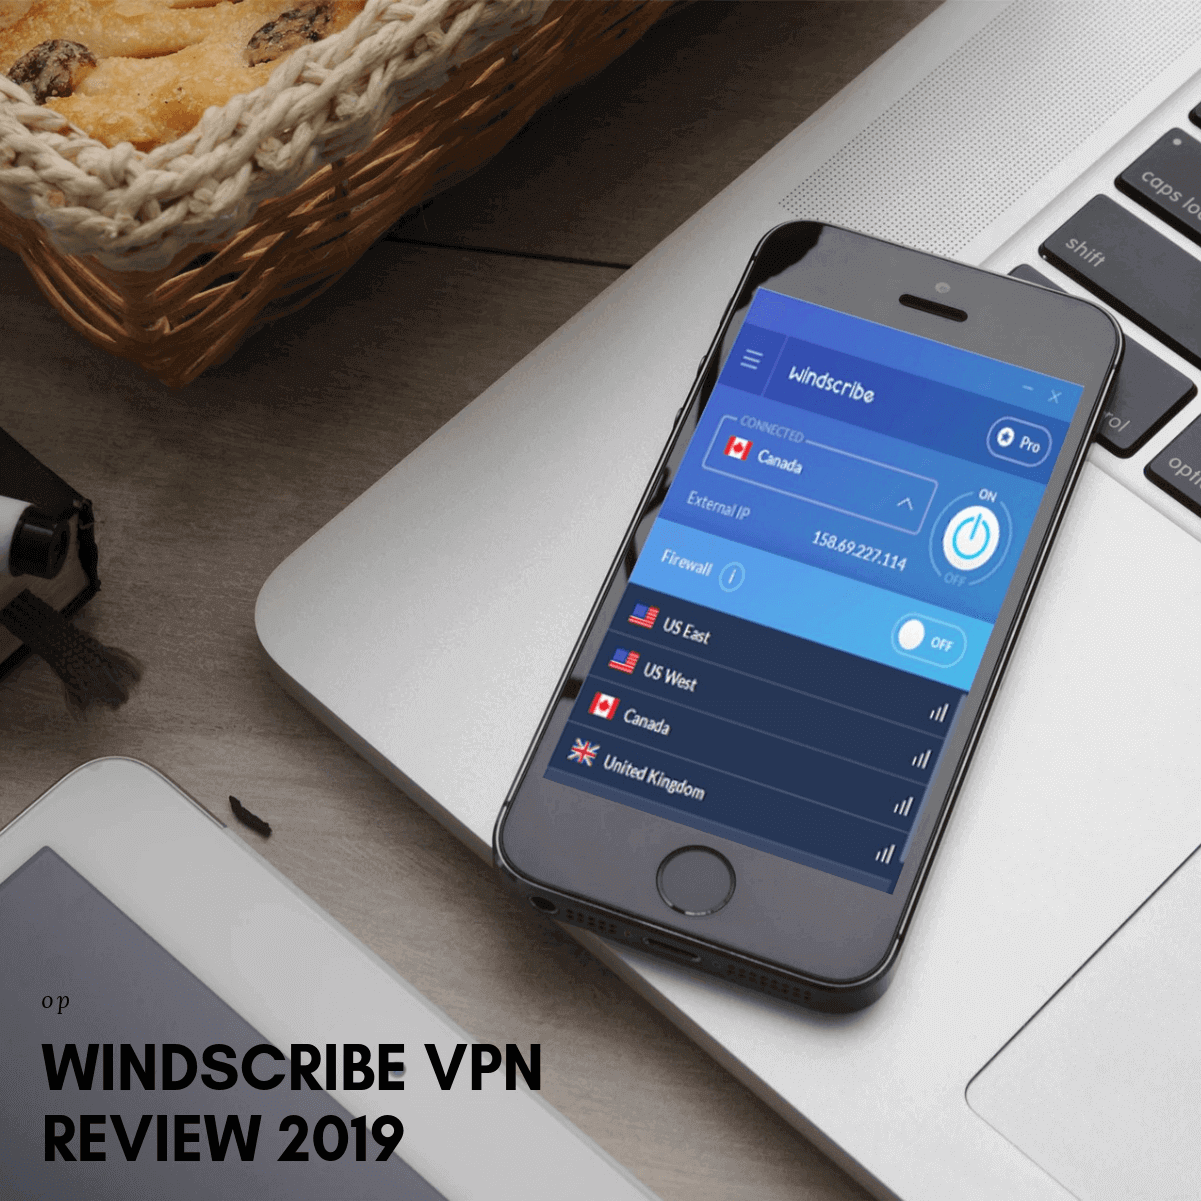 Windscribe VPN Review 2019 – Many Pros But Has One Major Con